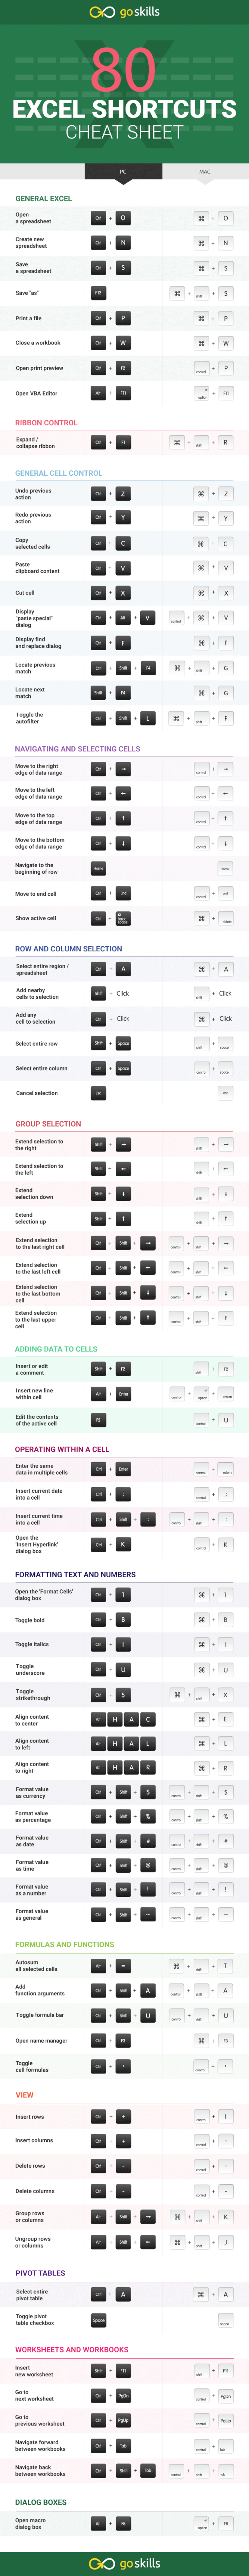 excel-shortcuts-infographic